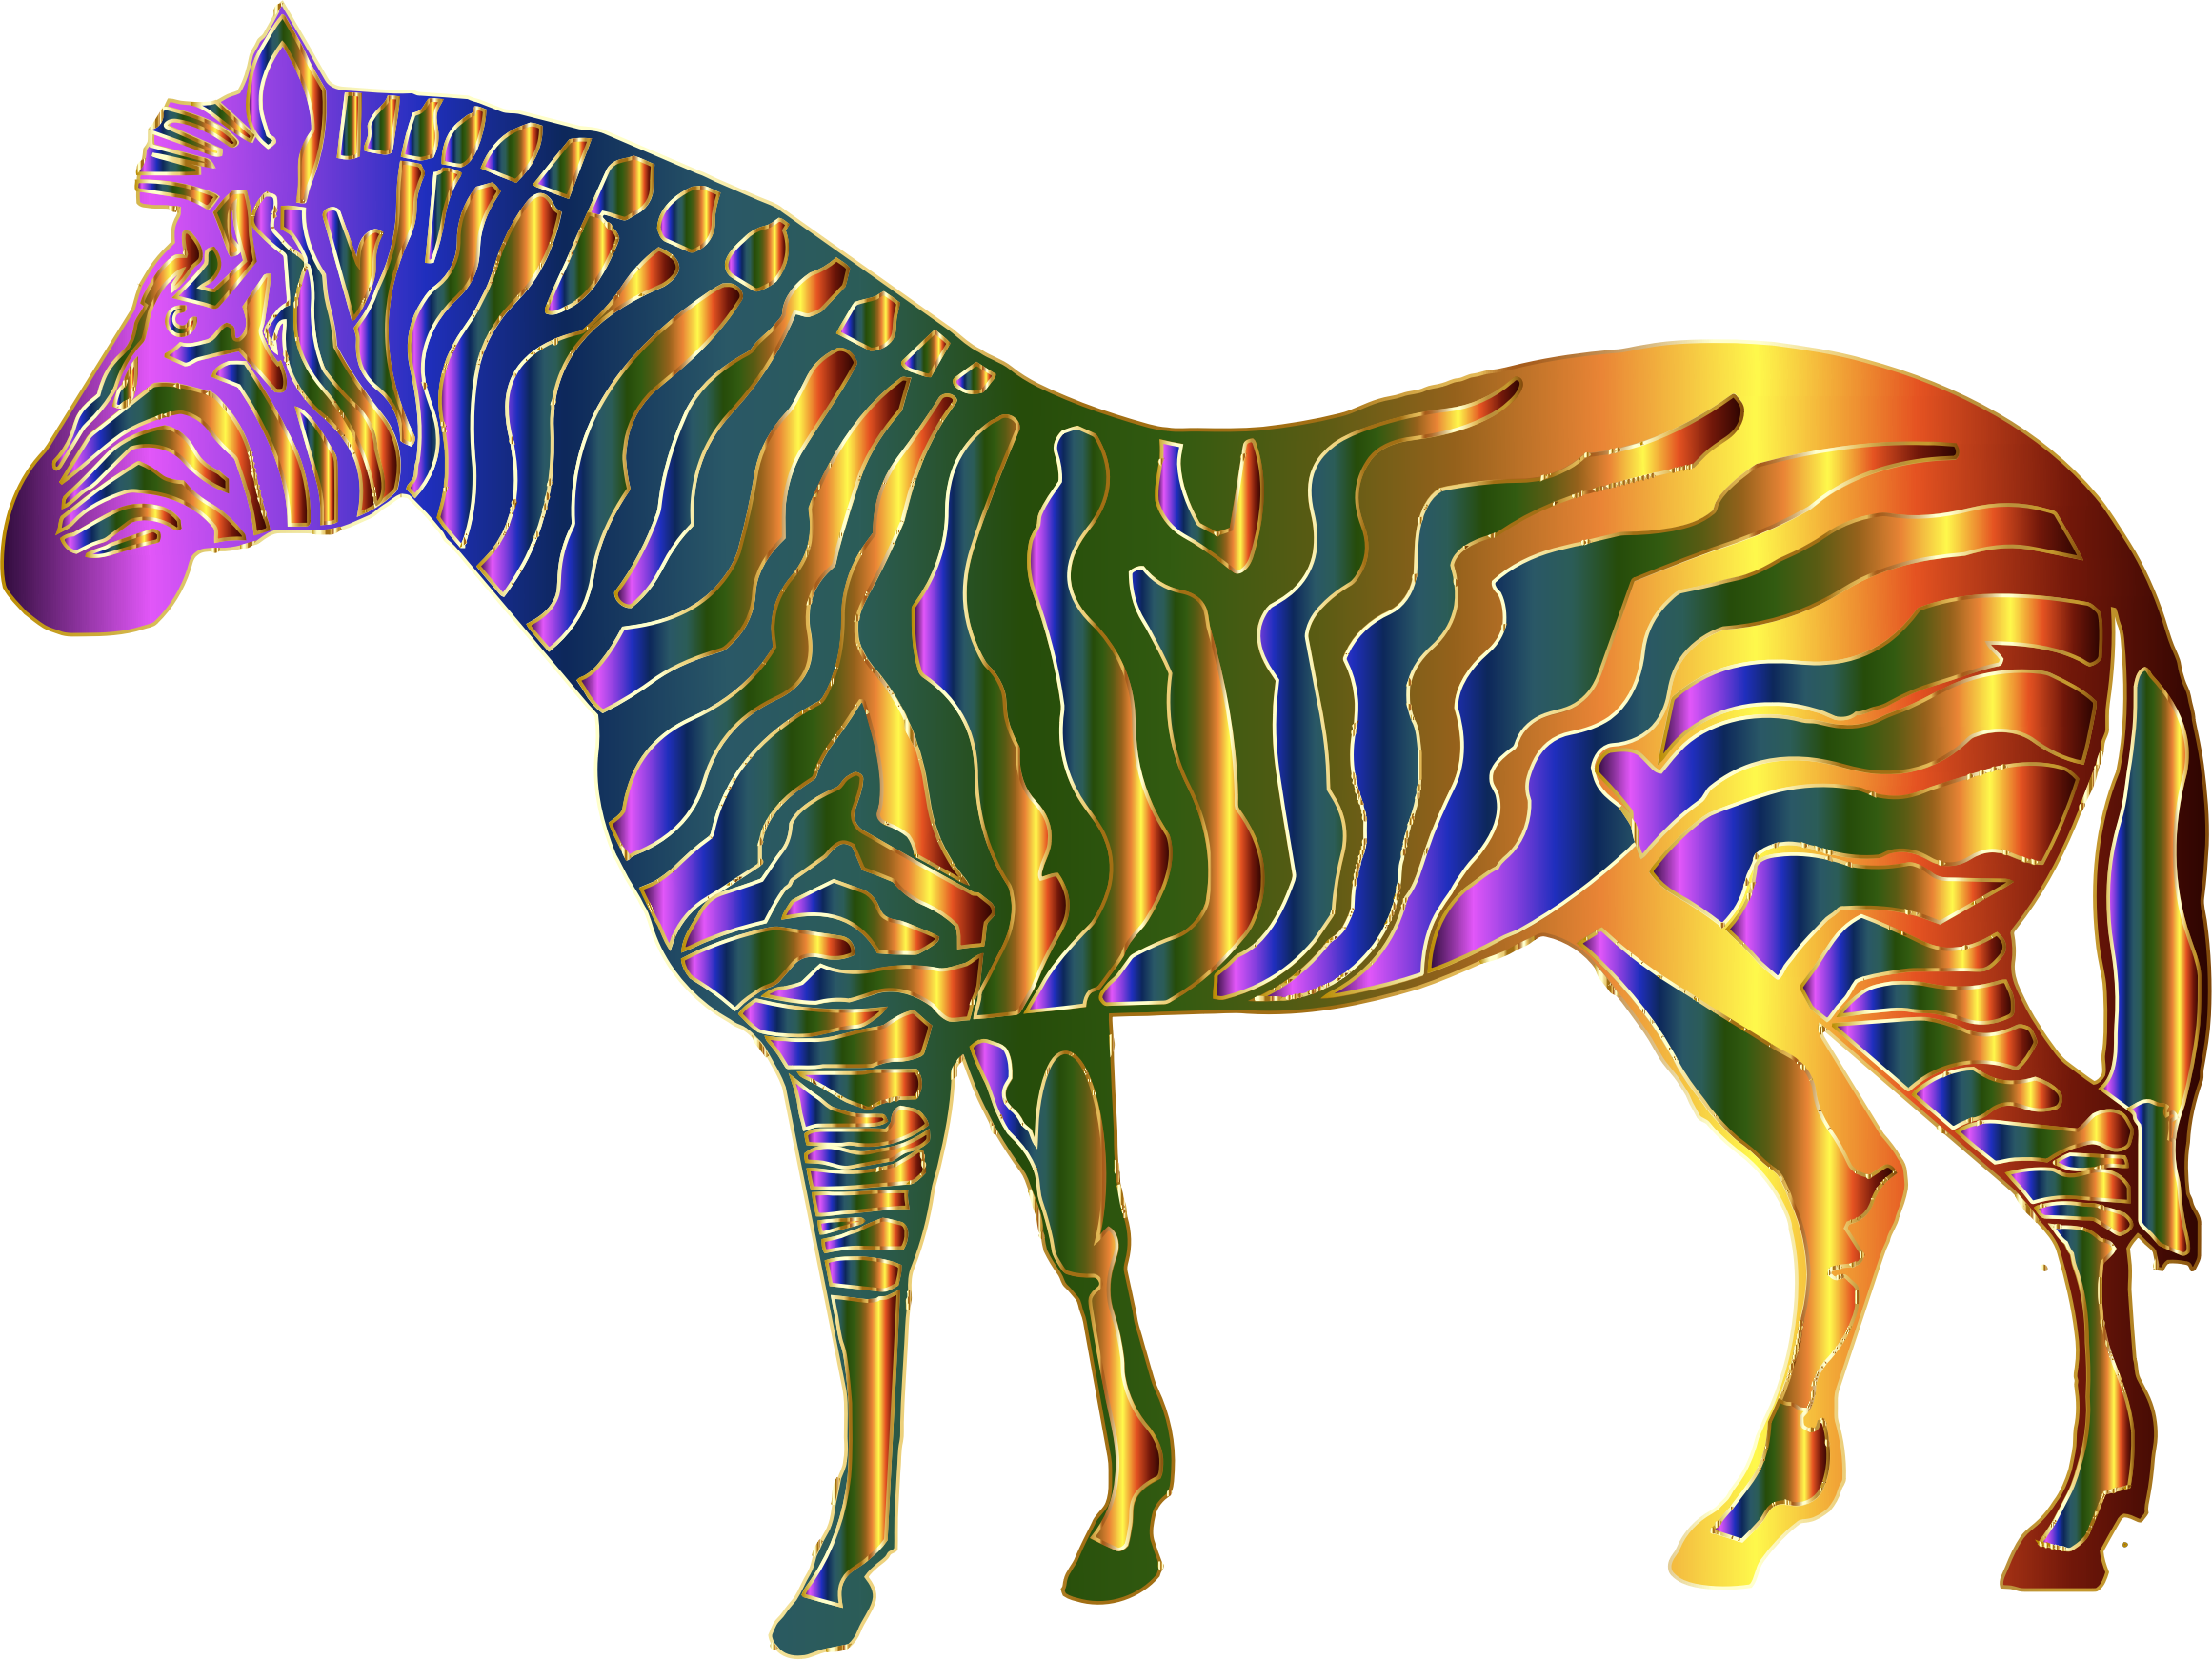 Chromatic Zebra by GDJ